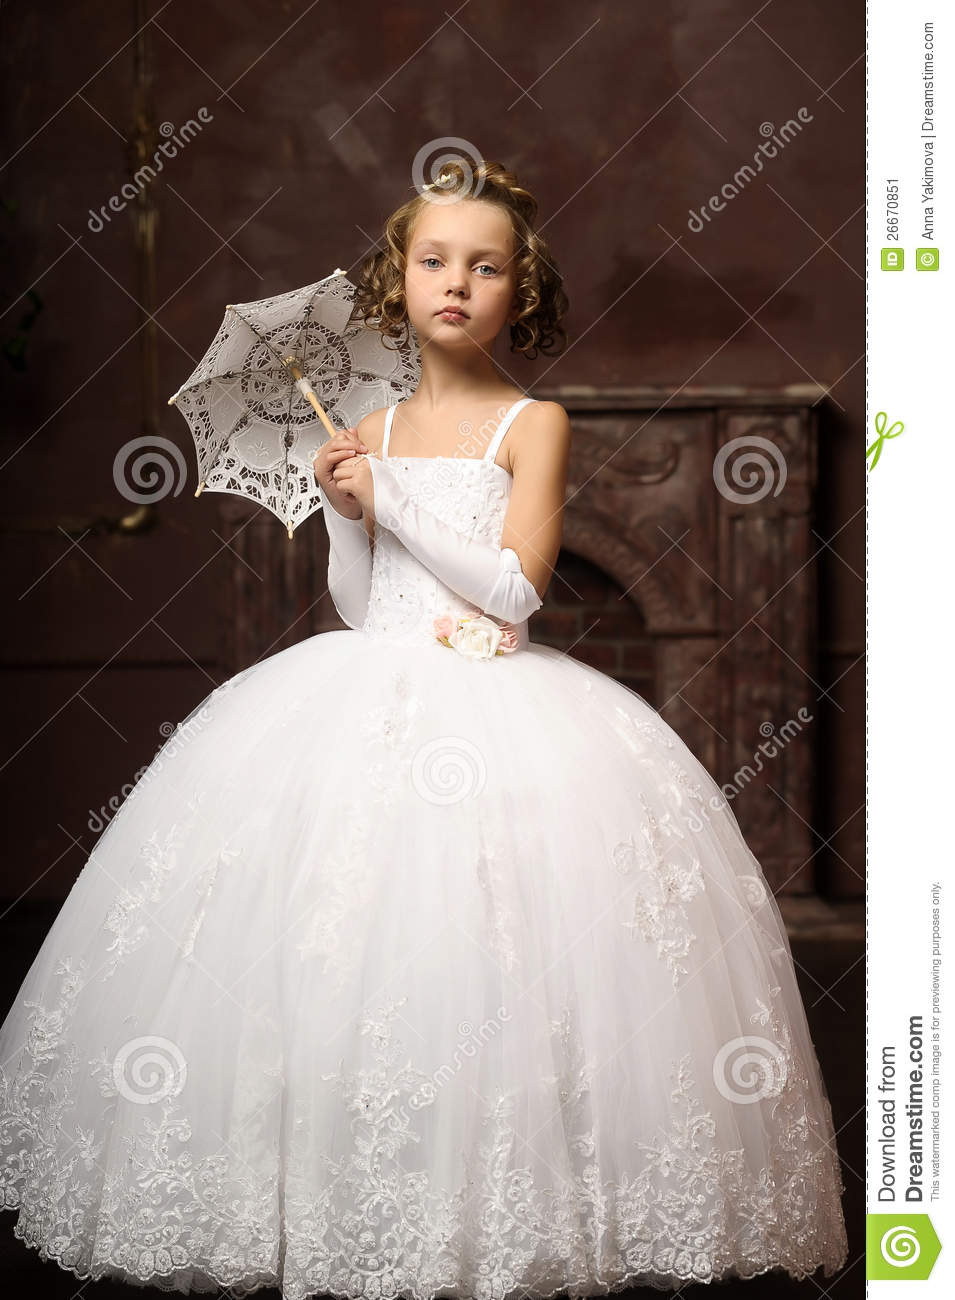 Little girl in wedding dress stock image image of hair for Wedding dresses for young girls